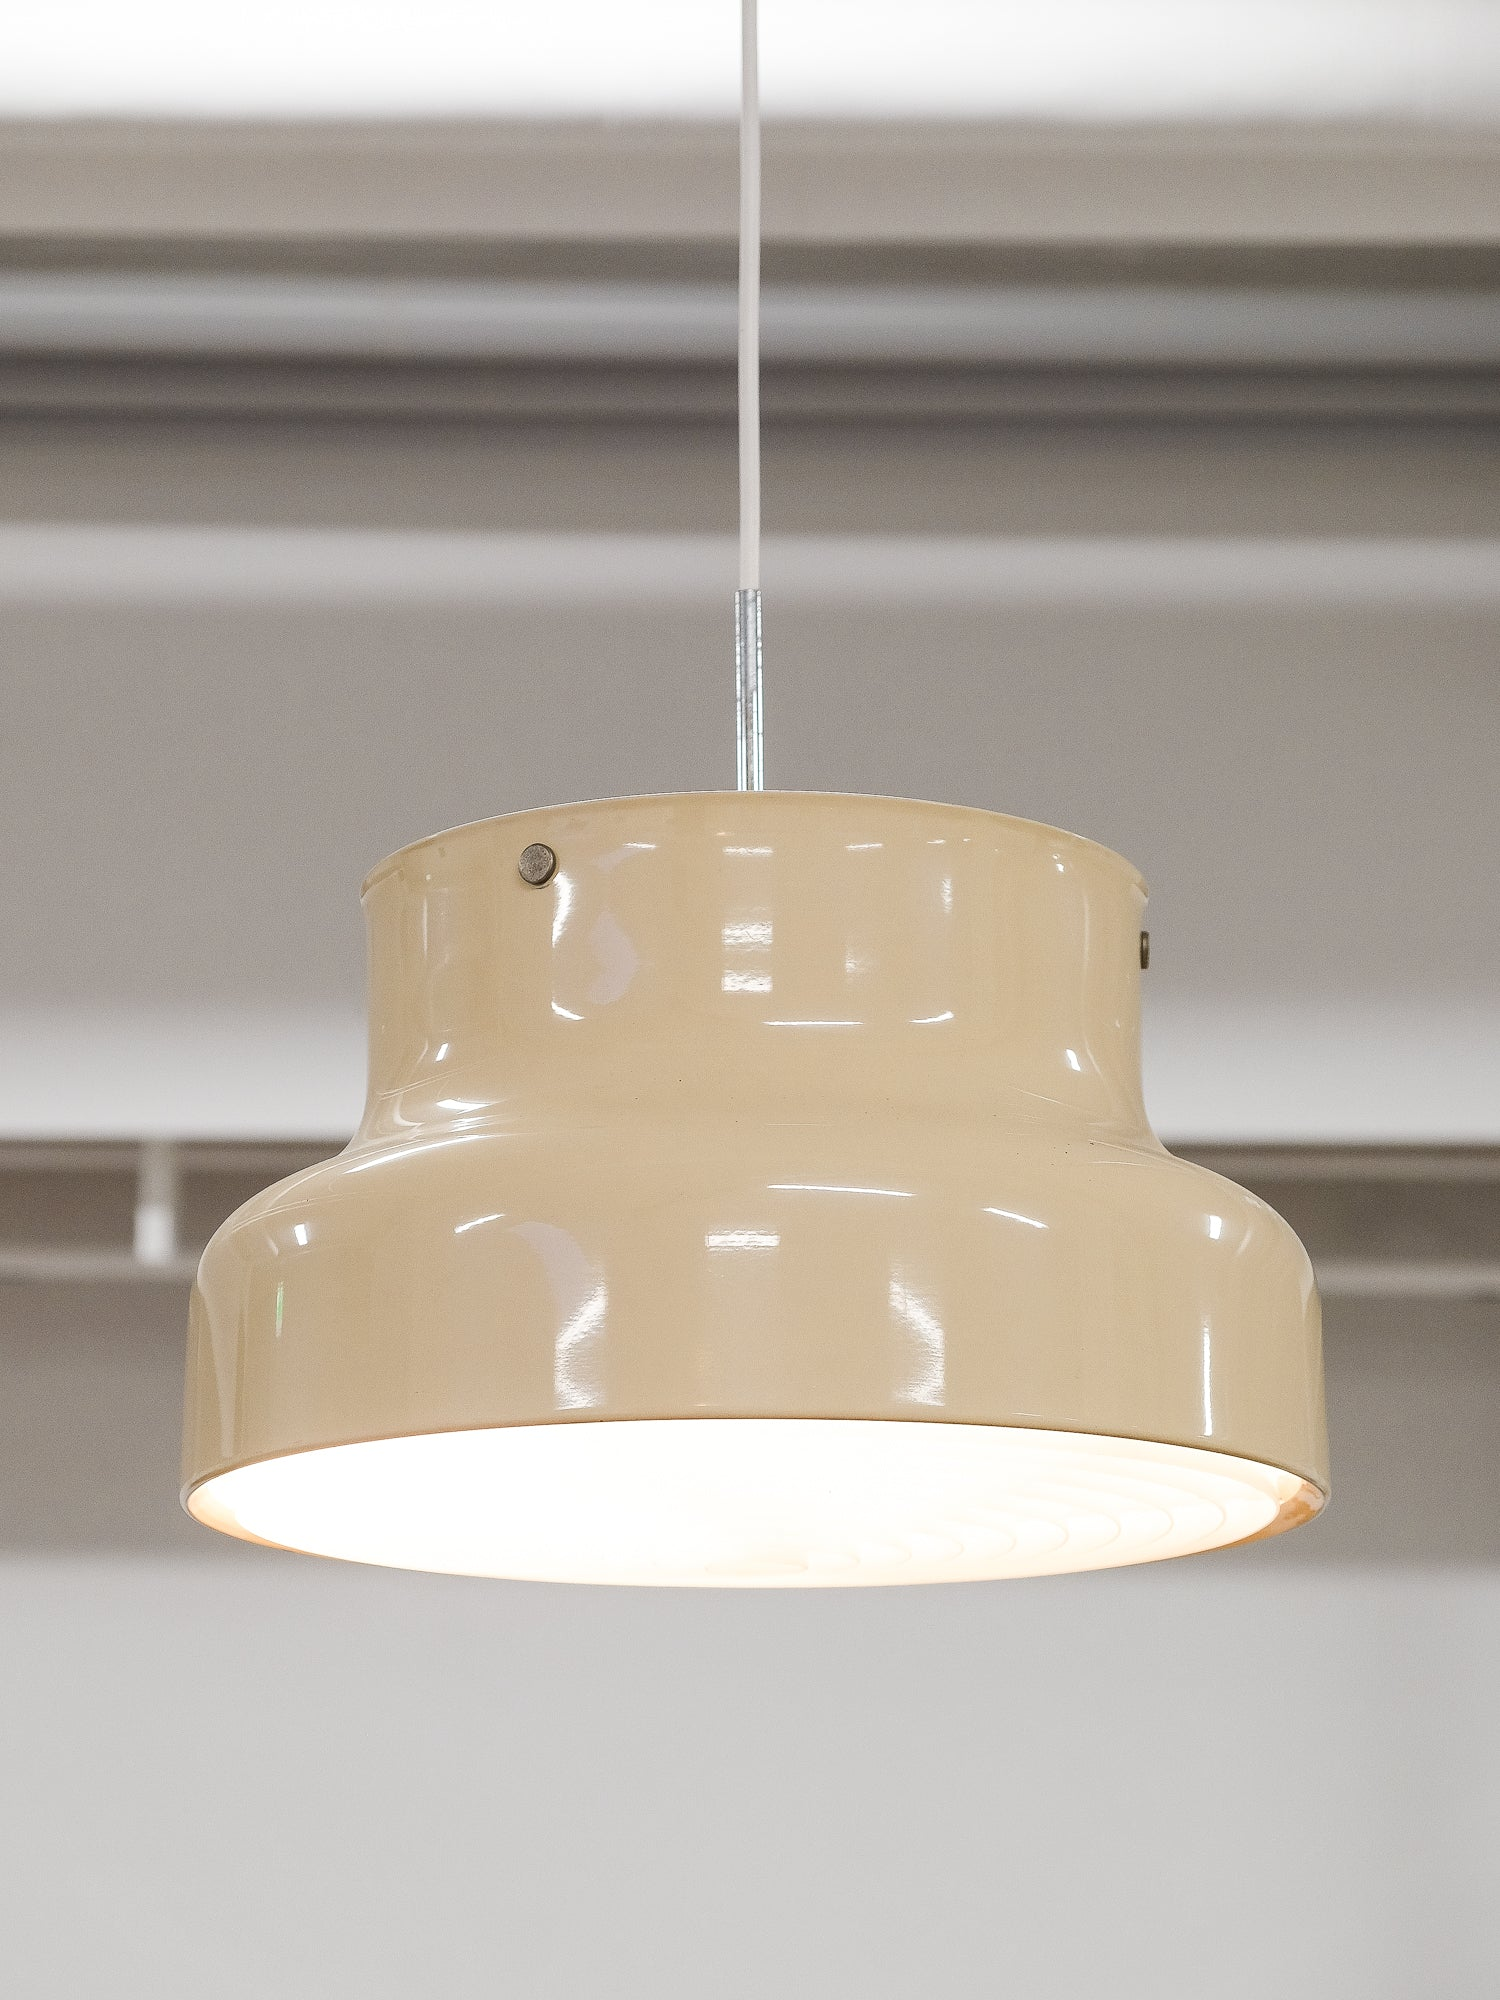 Vintage 'Bumling' Ceiling Lamp by Anders Pehrson